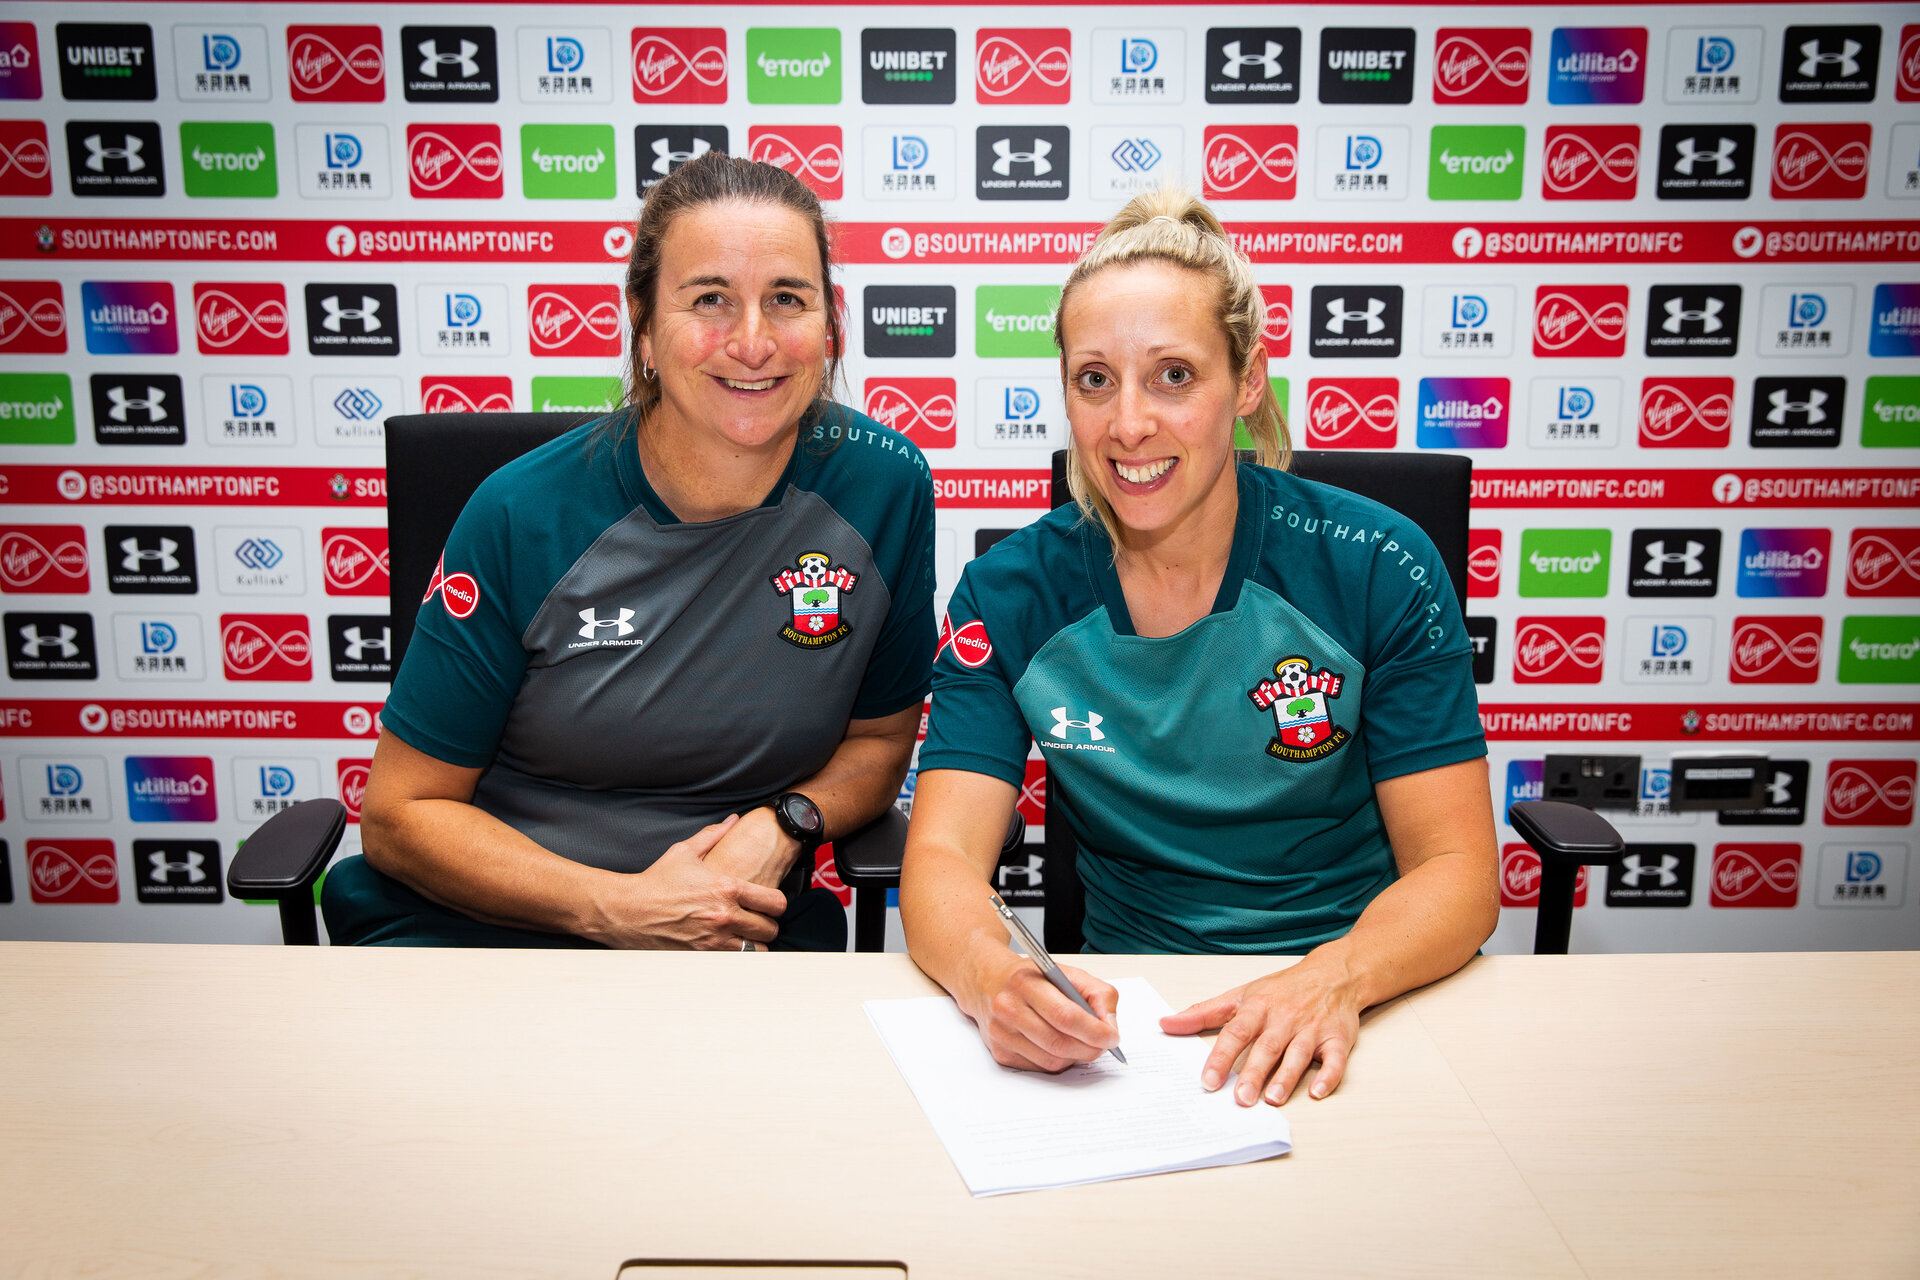 SOUTHAMPTON, ENGLAND - 2 JULY:  Shelly Provan (right) signs for Southampton FC pictured at Staplewood Training Ground on July 2, Southampton, England. (Photo by James Bridle - Southampton FC/Southampton FC via Getty Images)